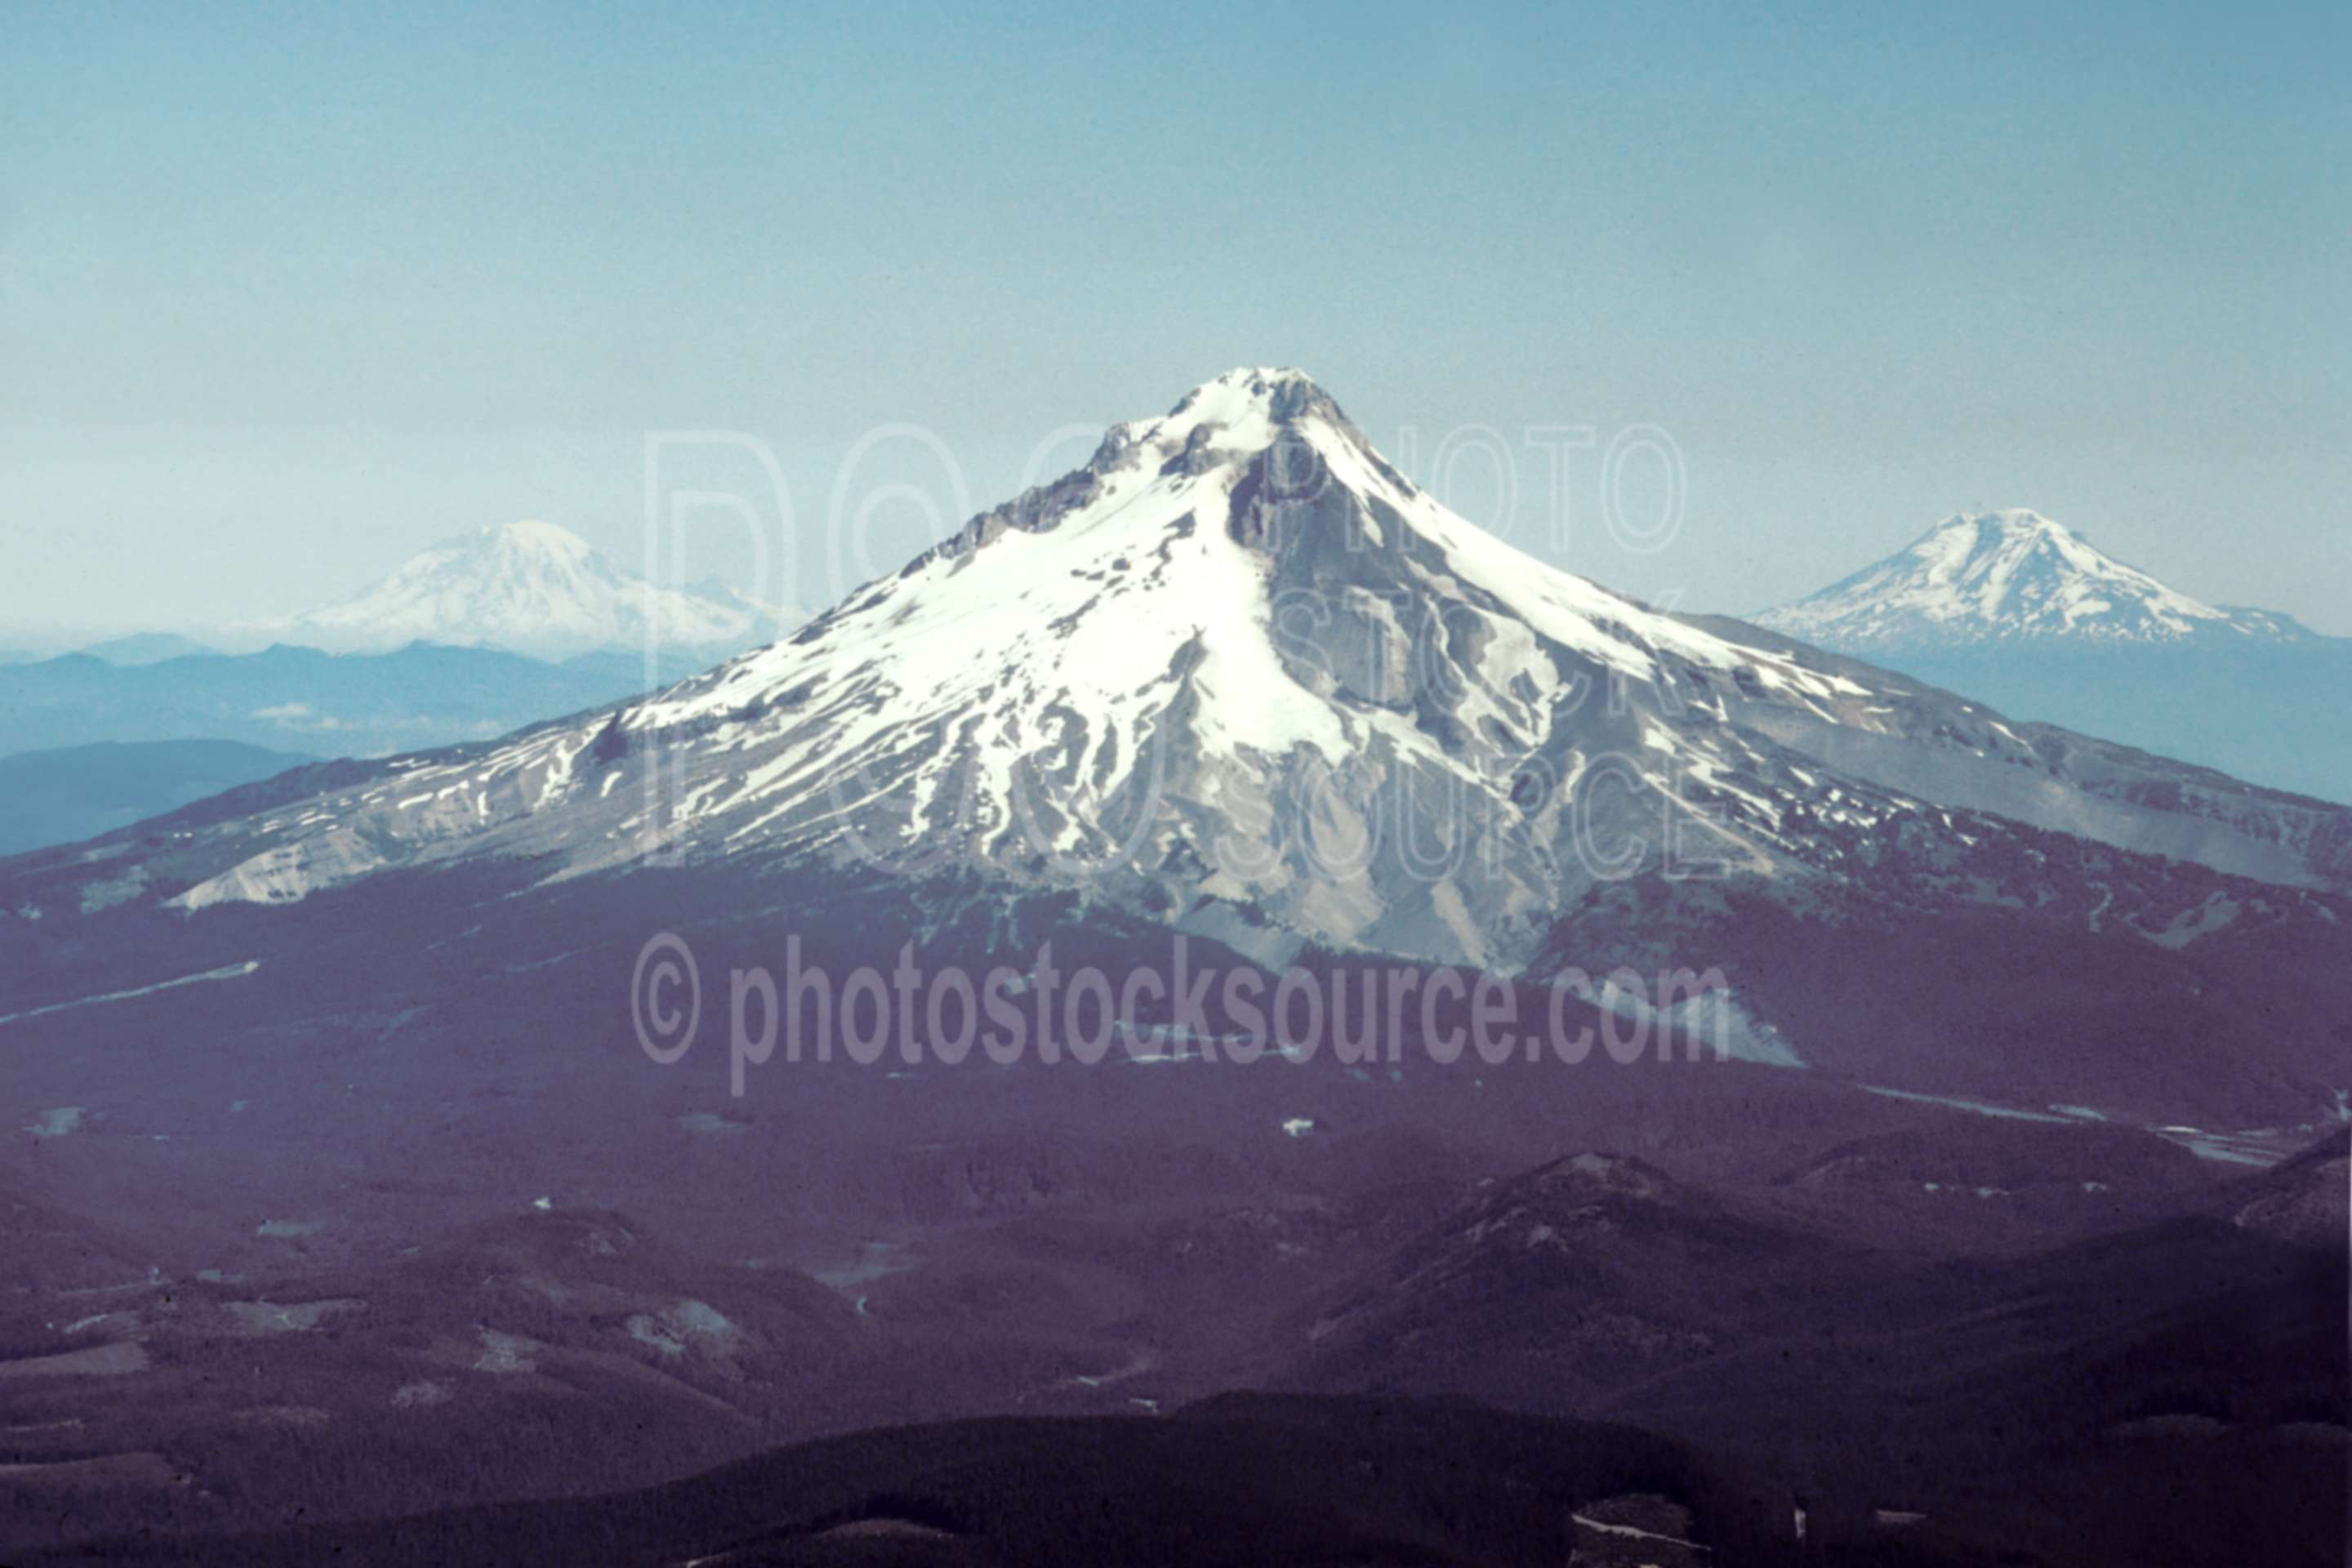 Mt. Rainier, Hood, Adams,mt rainier,mt. adams,mt. hood,mount,usas,mountains